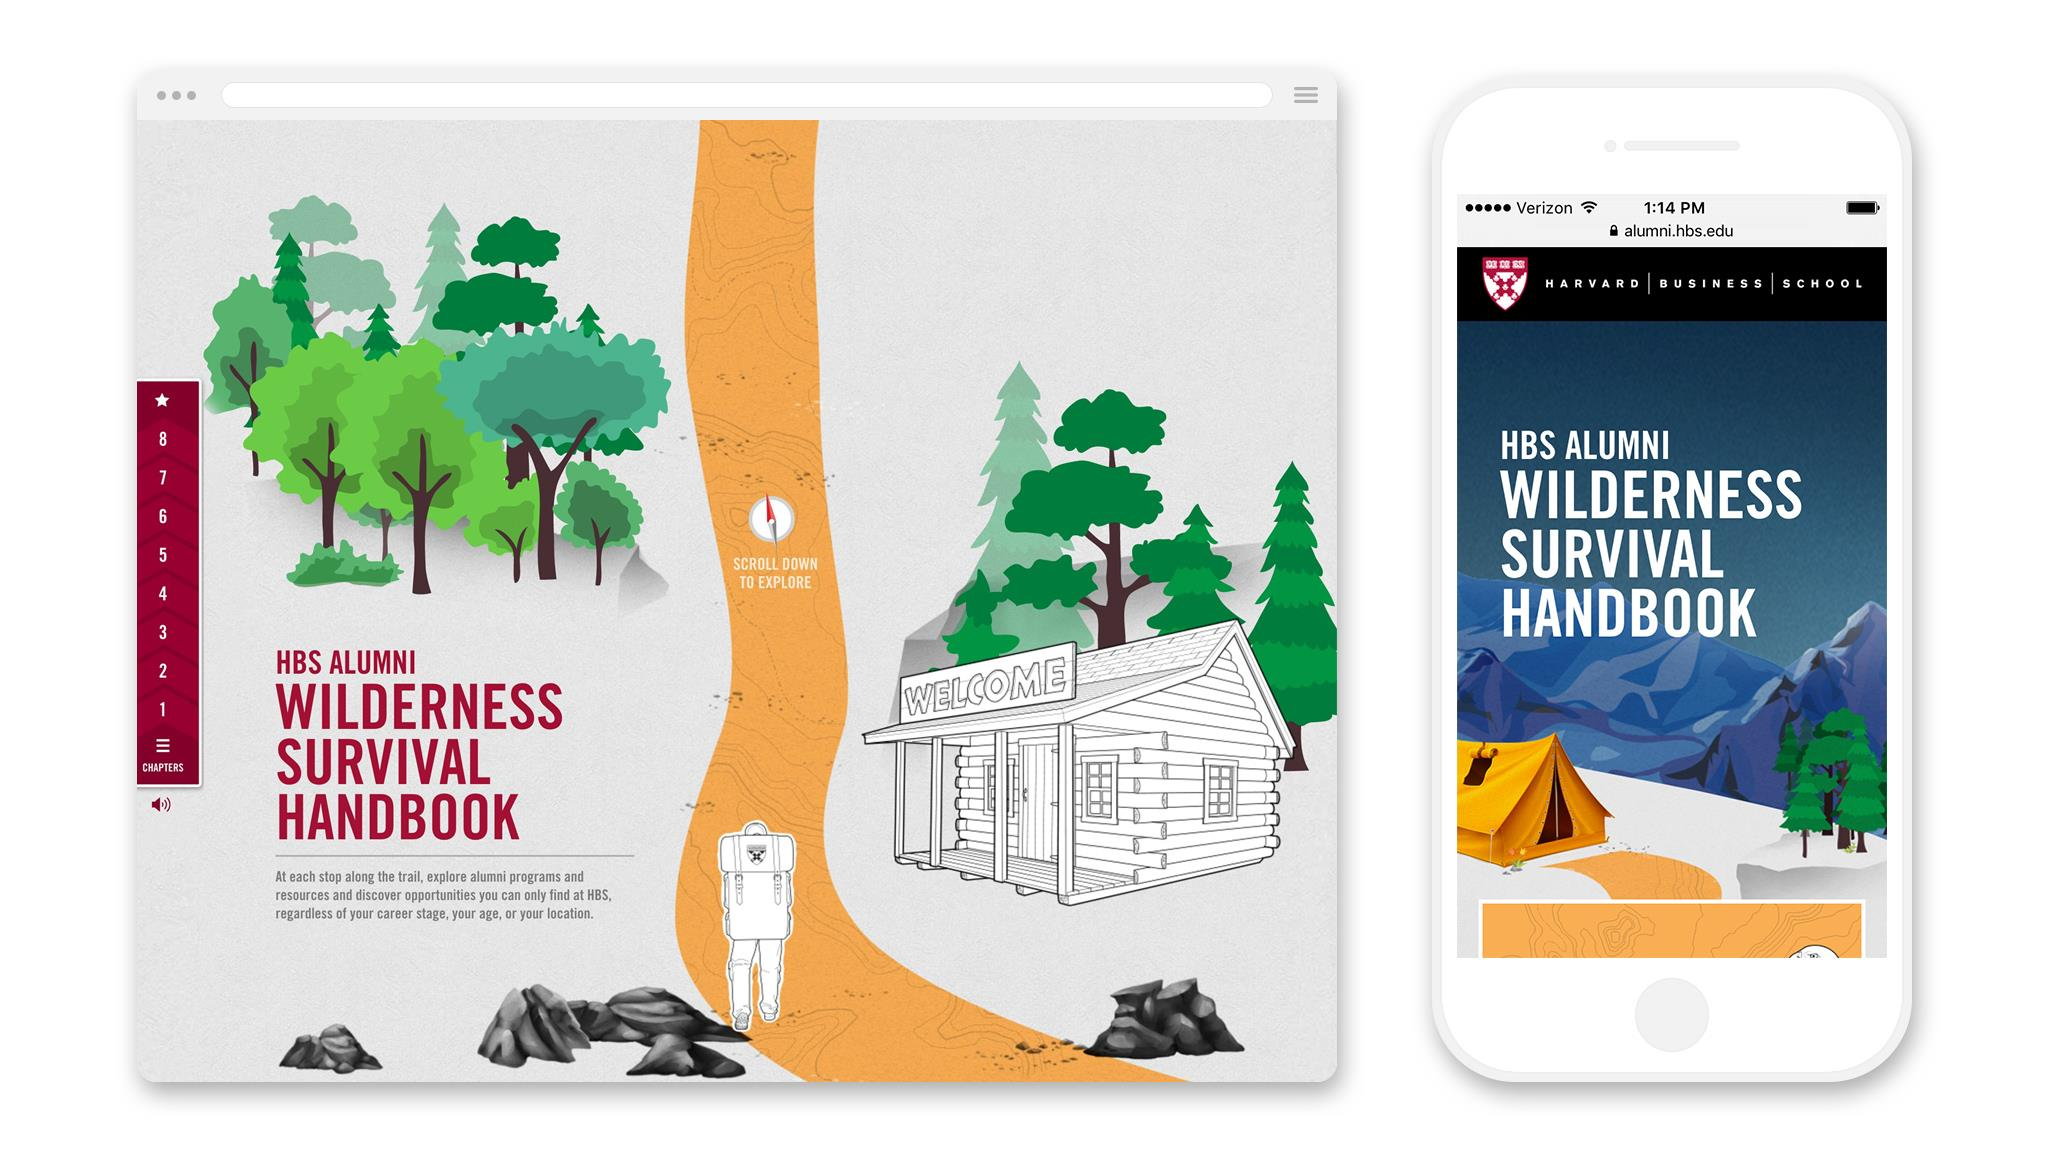 Harvard Business School: Alumni Wilderness Survival Handbook